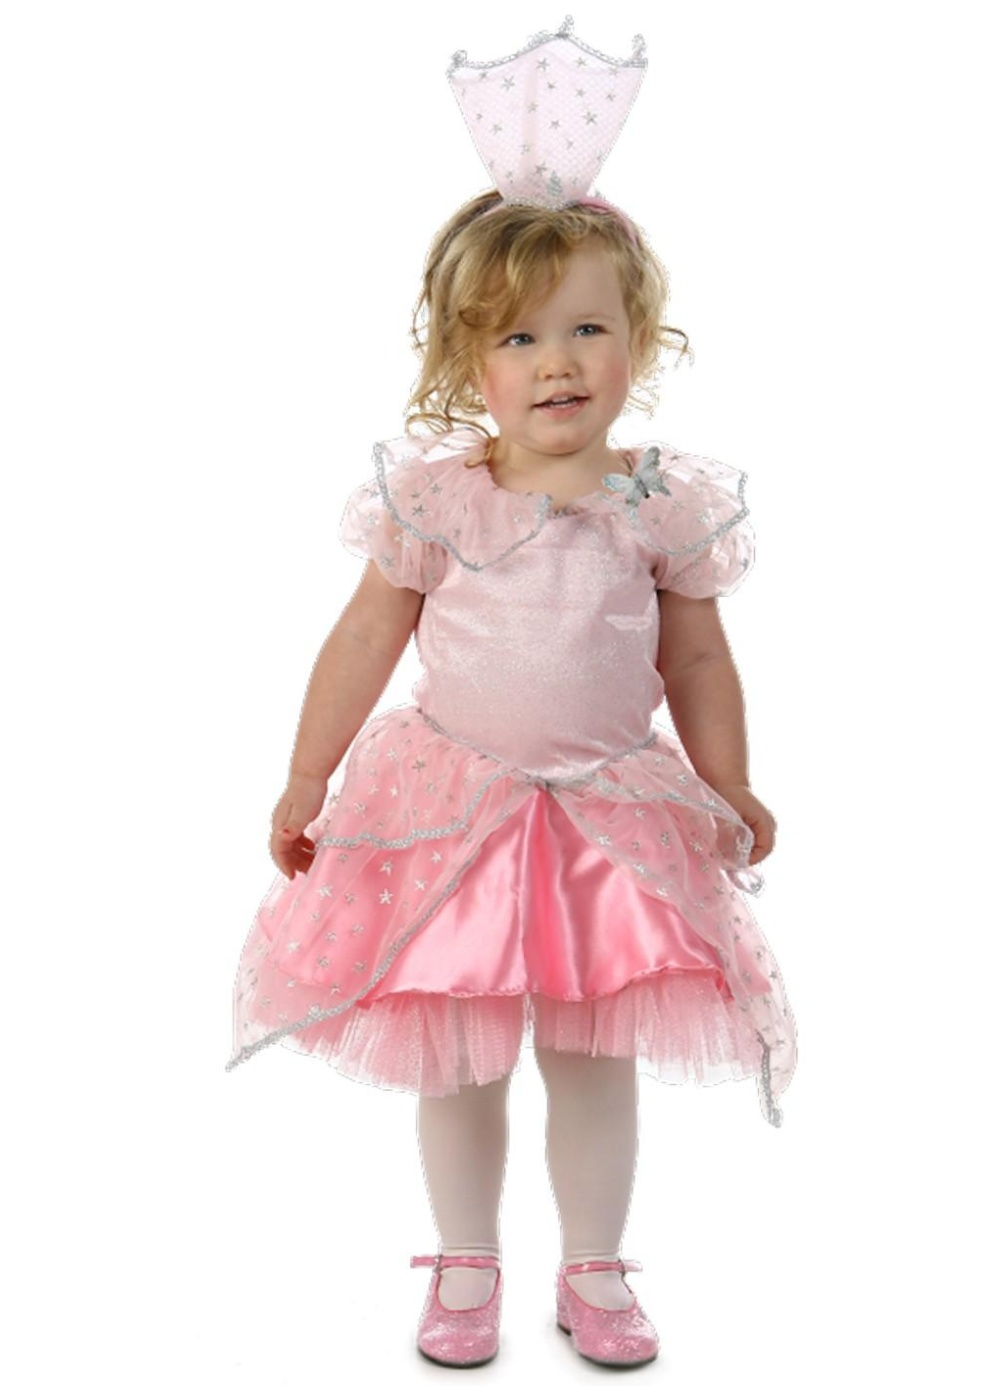 Wizard Of Oz Glinda The Good Witch Baby Costume  sc 1 st  Wonder Costumes & Wizard of Oz Glinda the Good Witch Baby Costume - Movie Costumes